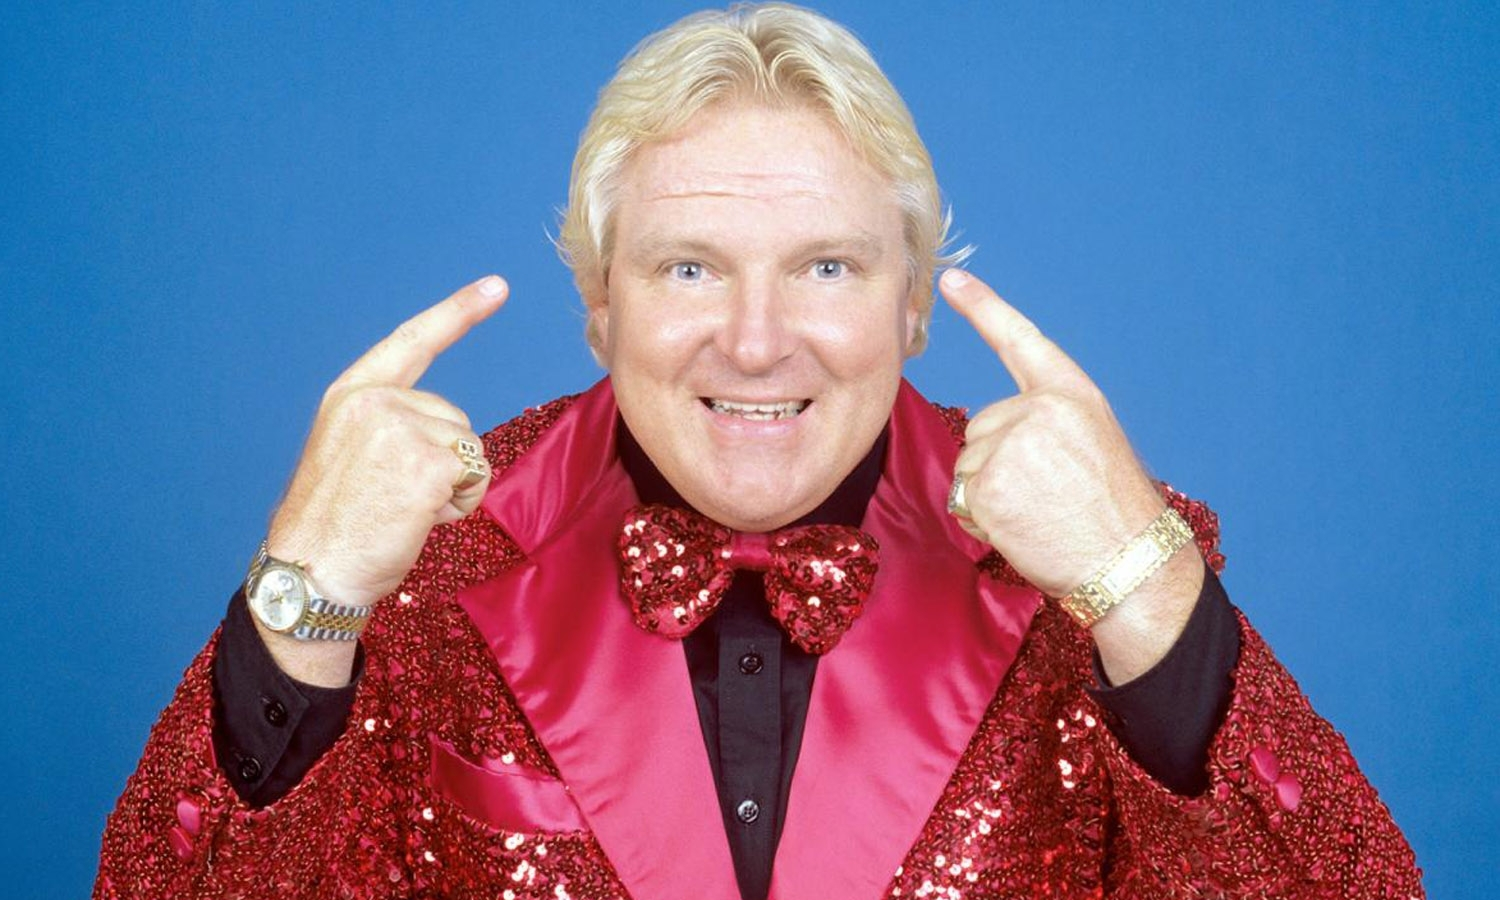 Bobby 'The Brain' Heenan